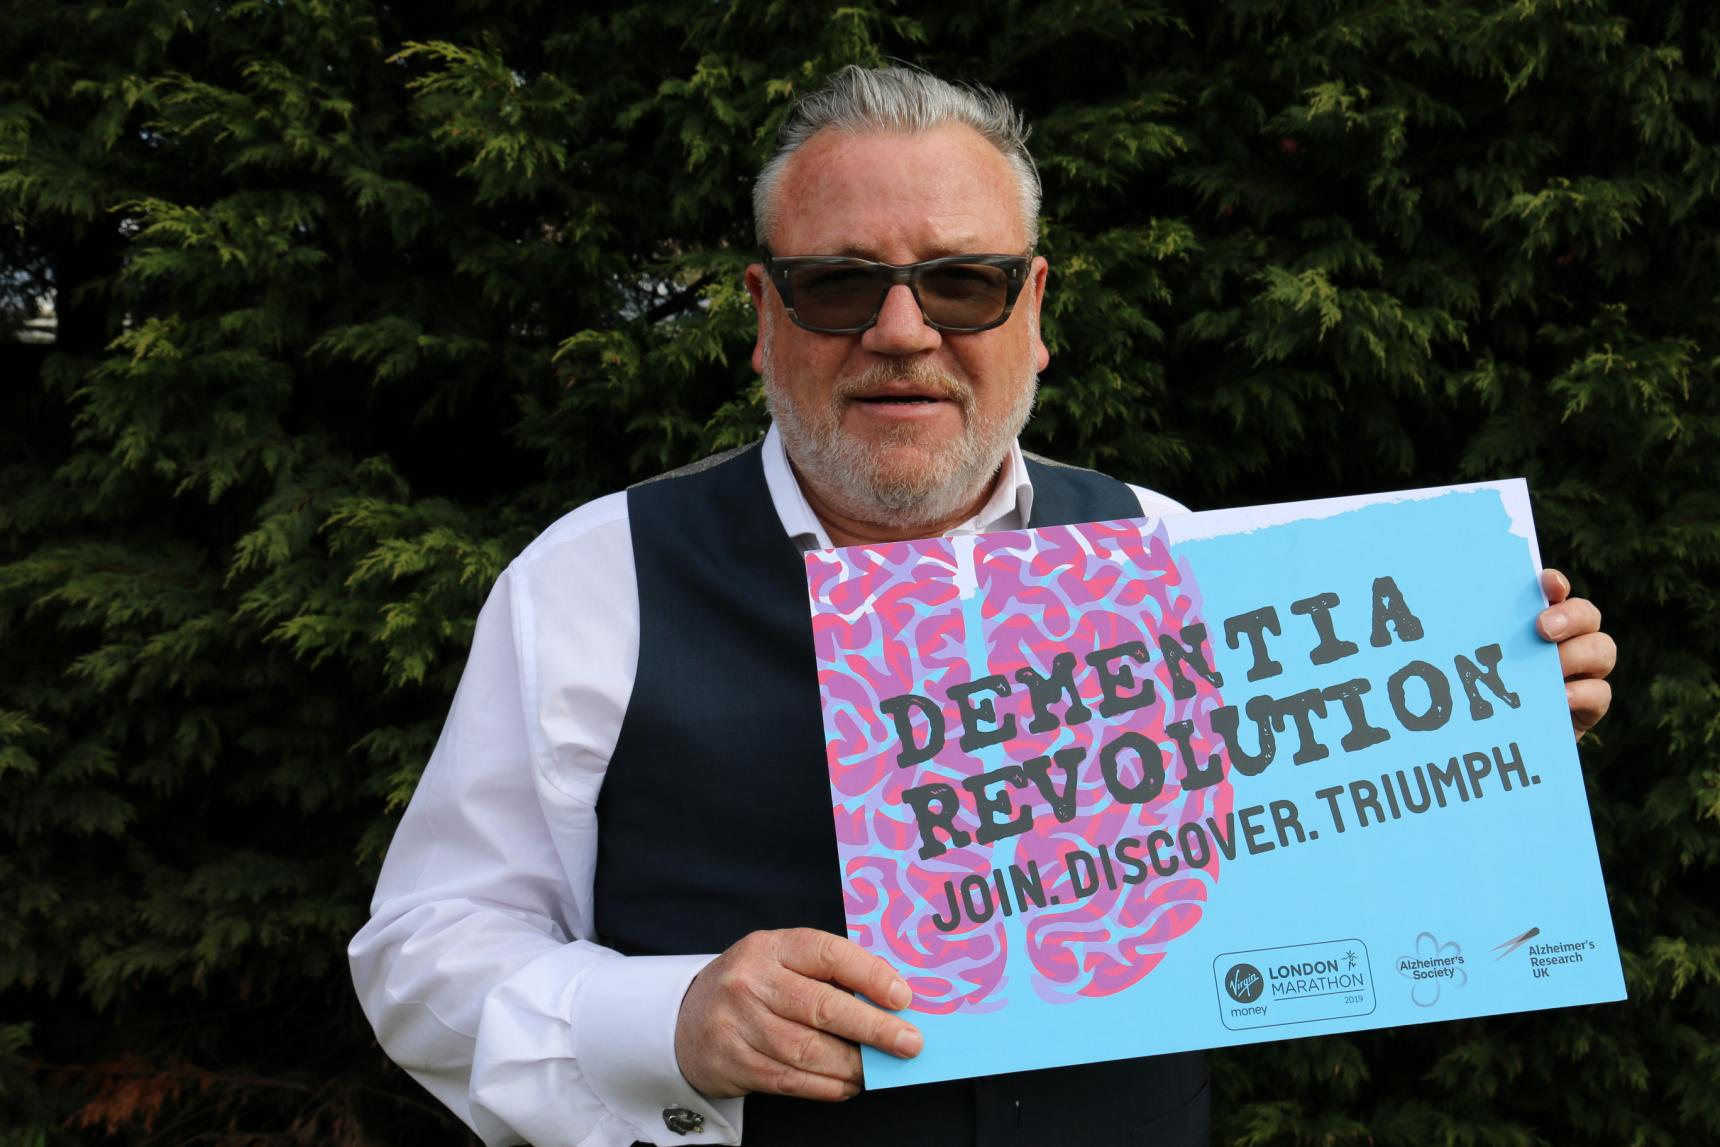 Ray Winstone holding a dementia revolution sign